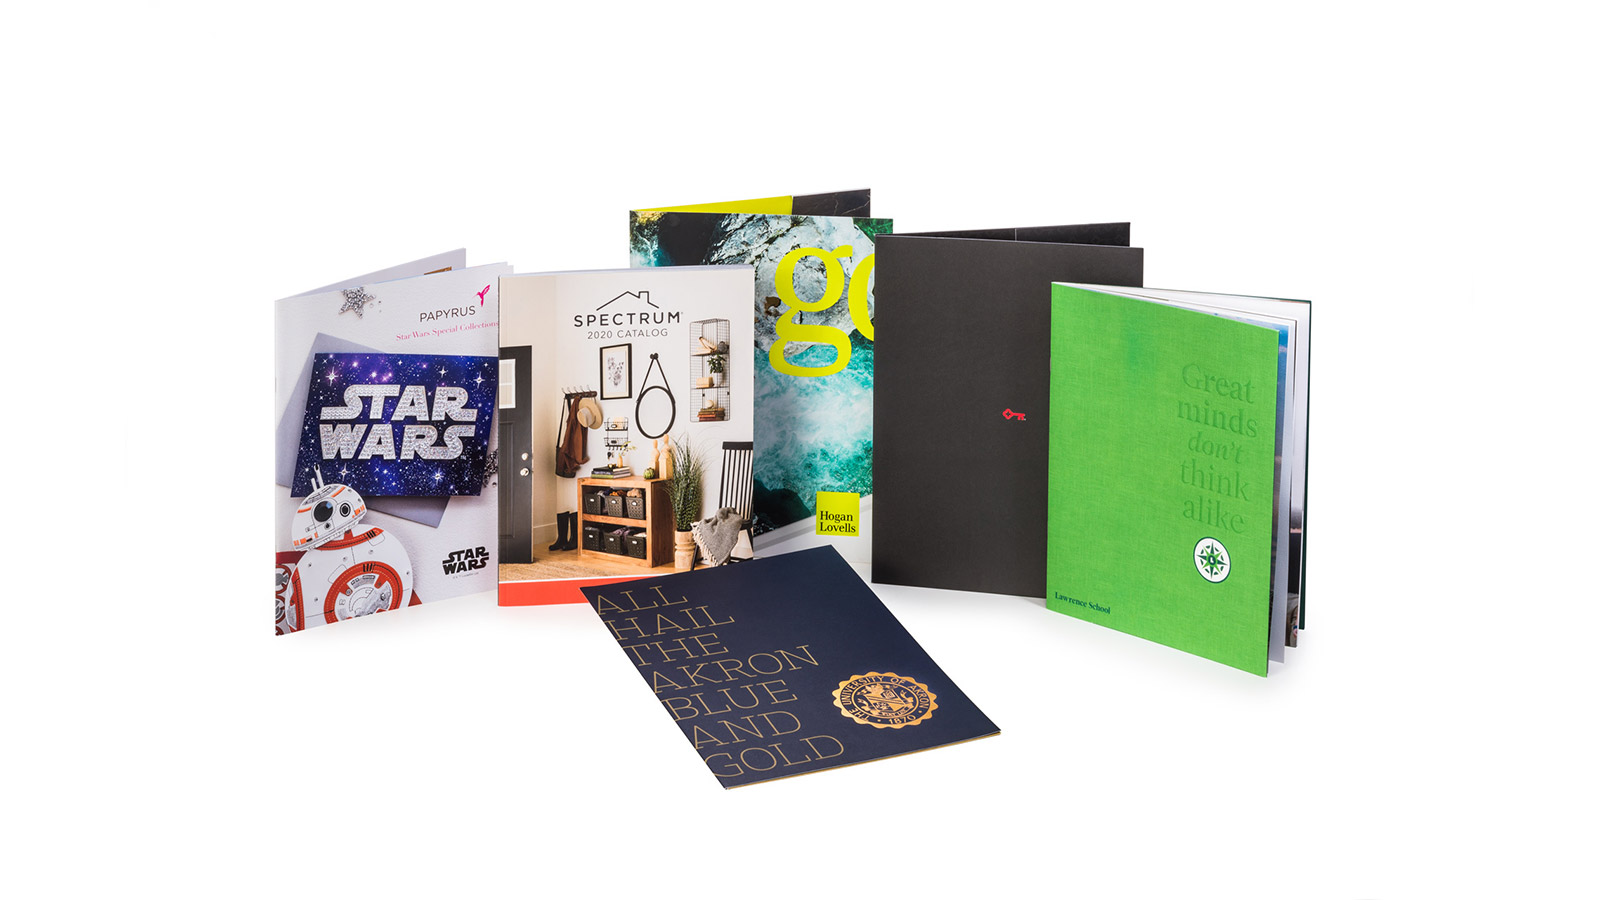 7 of the Most Effective Types of Marketing Collateral